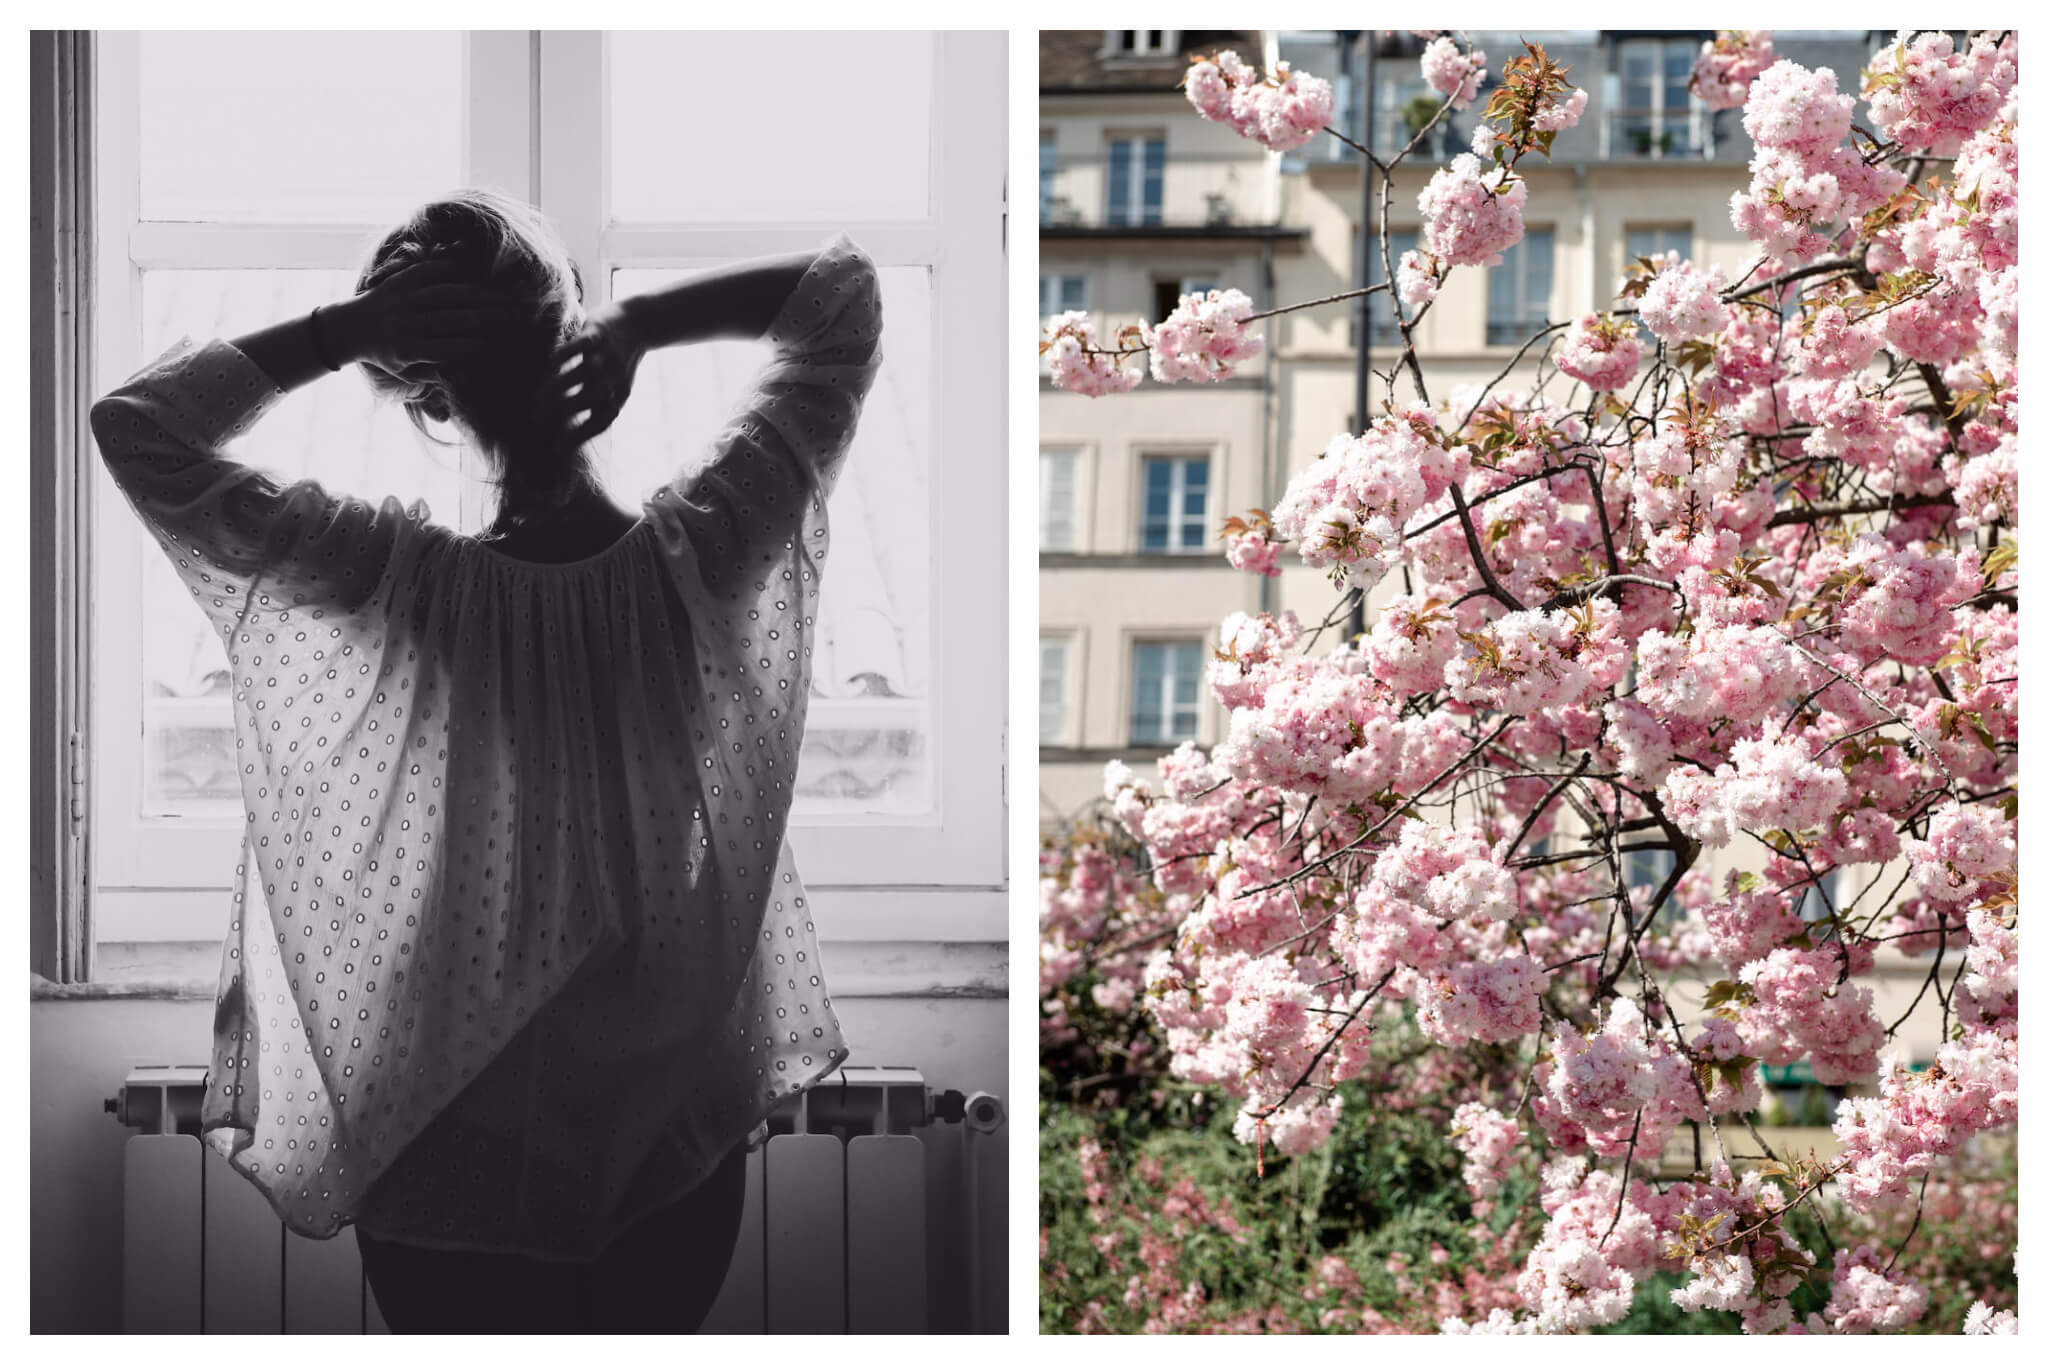 Left, woman seen from the back as stays home during the Covid-19 pandemic. Right, cherry tree blossoms in Paris spring at the moment.